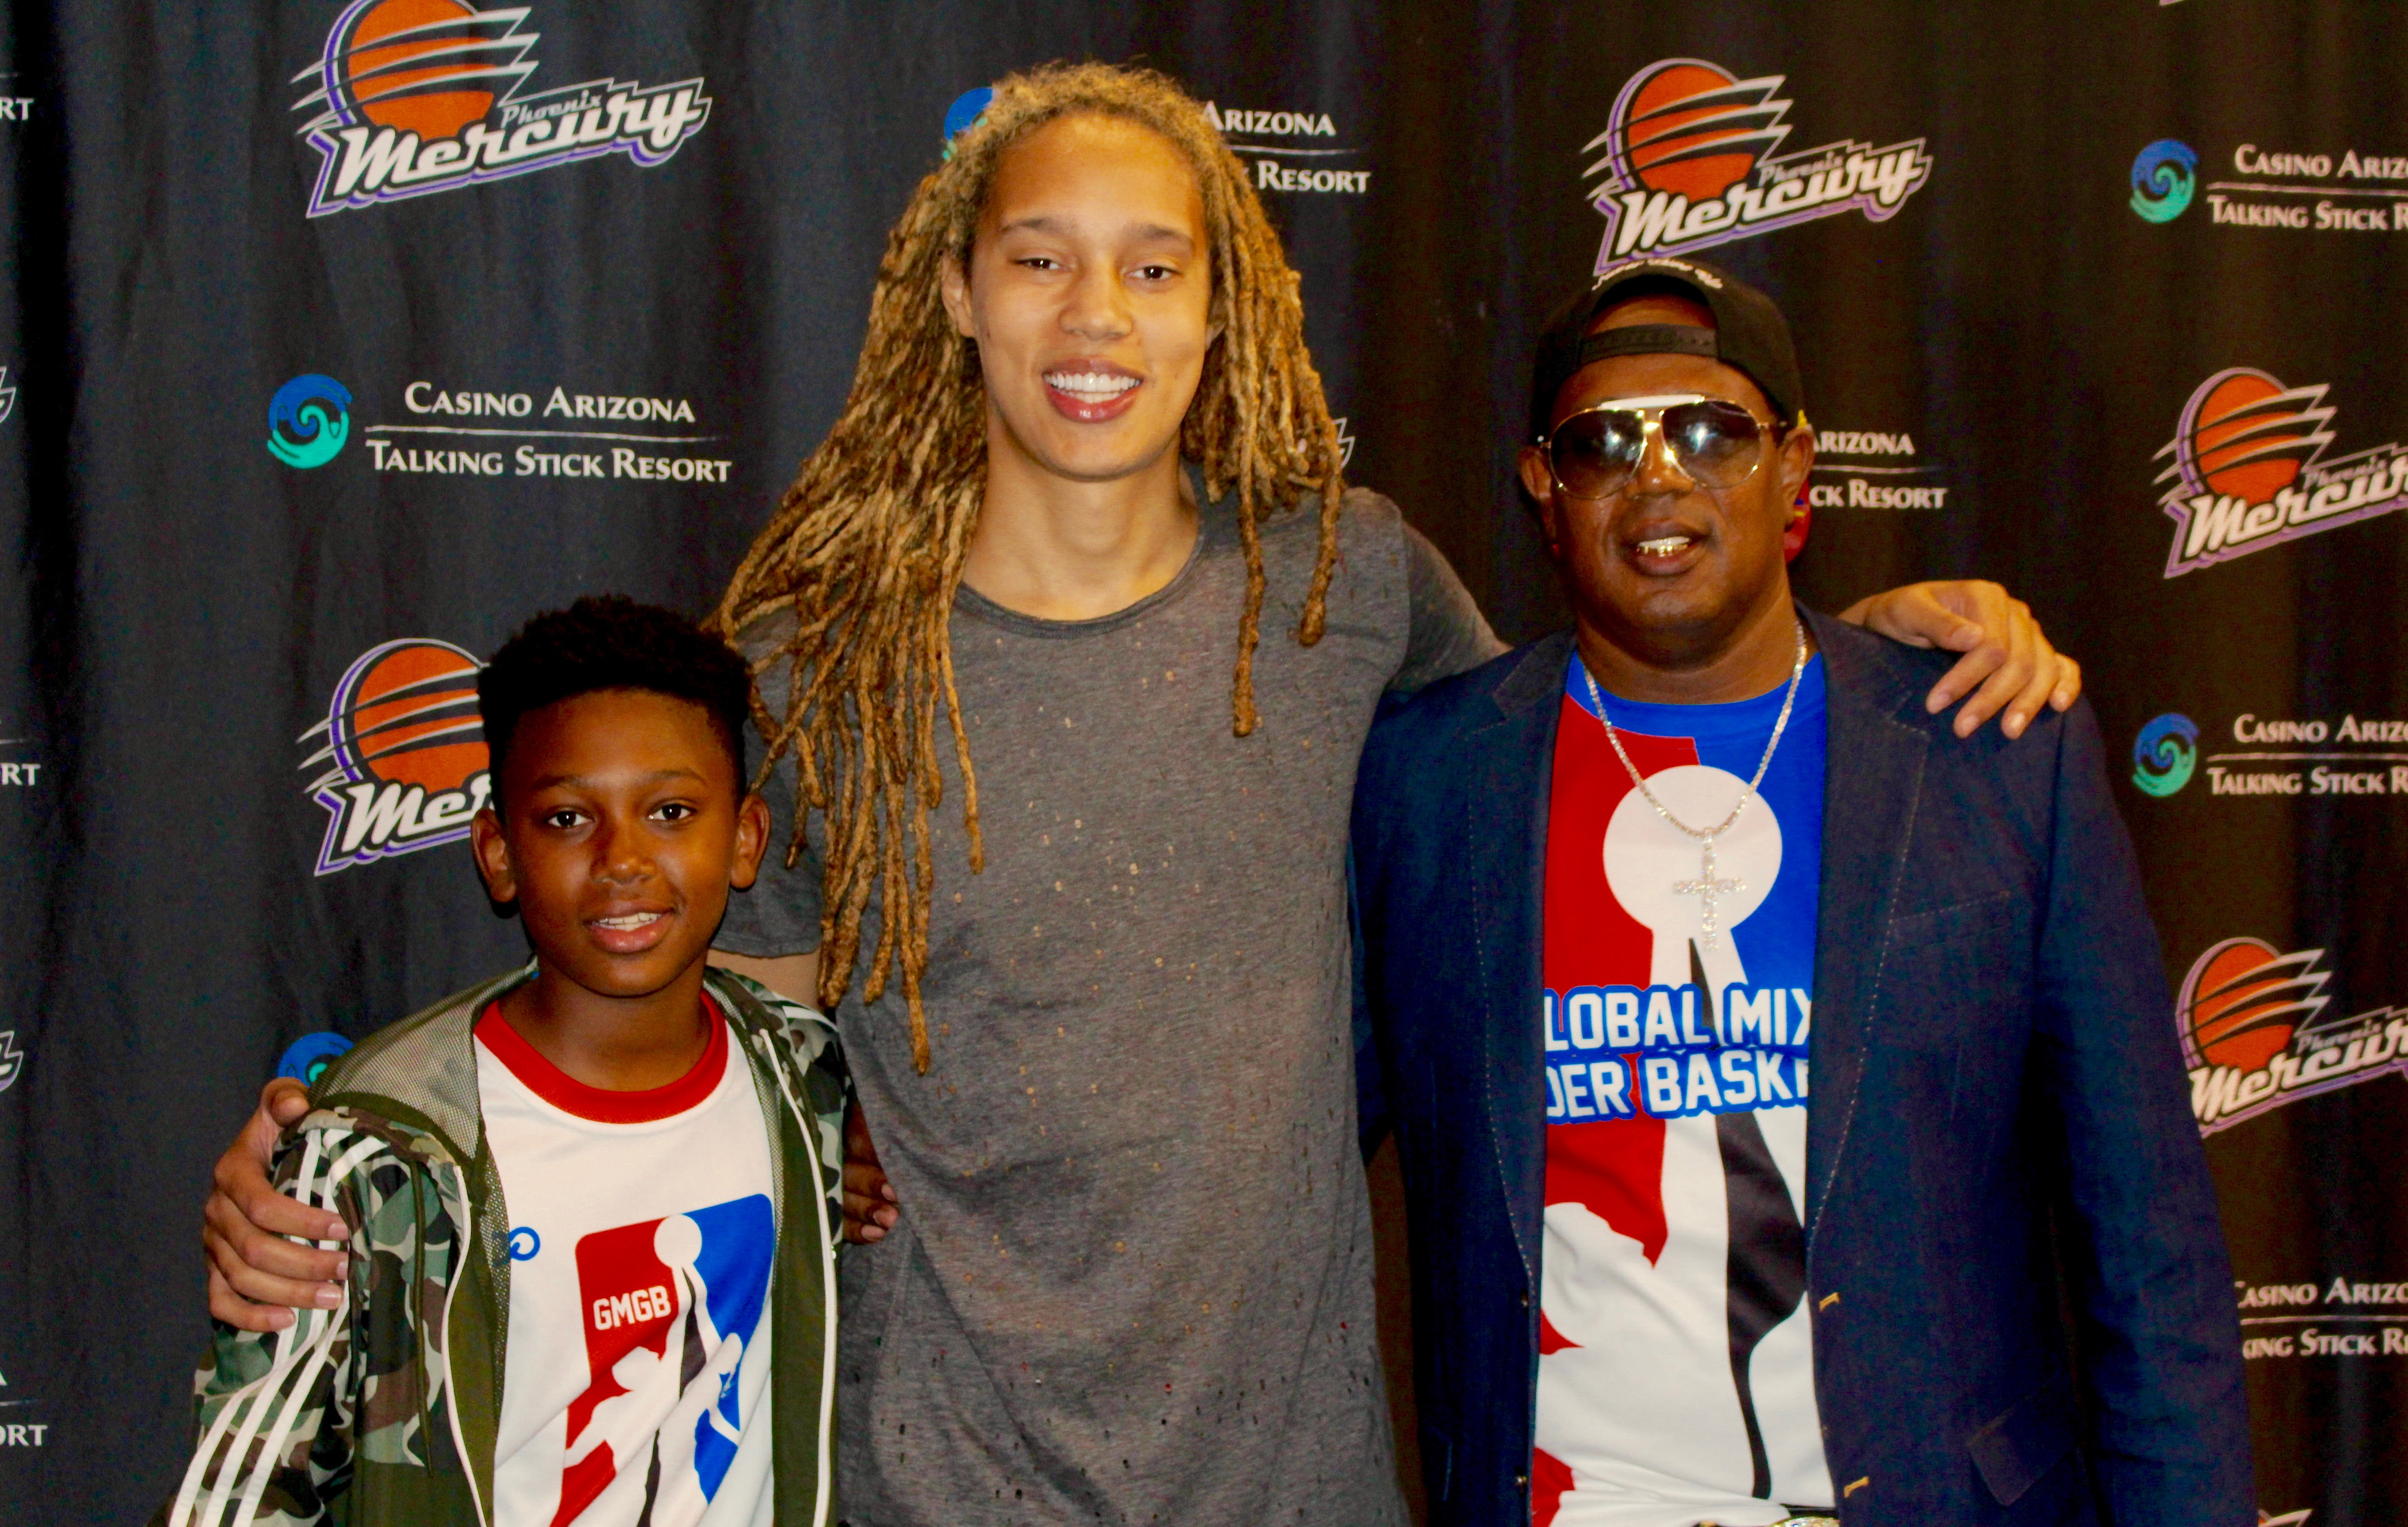 3cbc3f7dd MASTER P GMGB SUPPORTS THE WNBA AND BRITTNEY GRINER